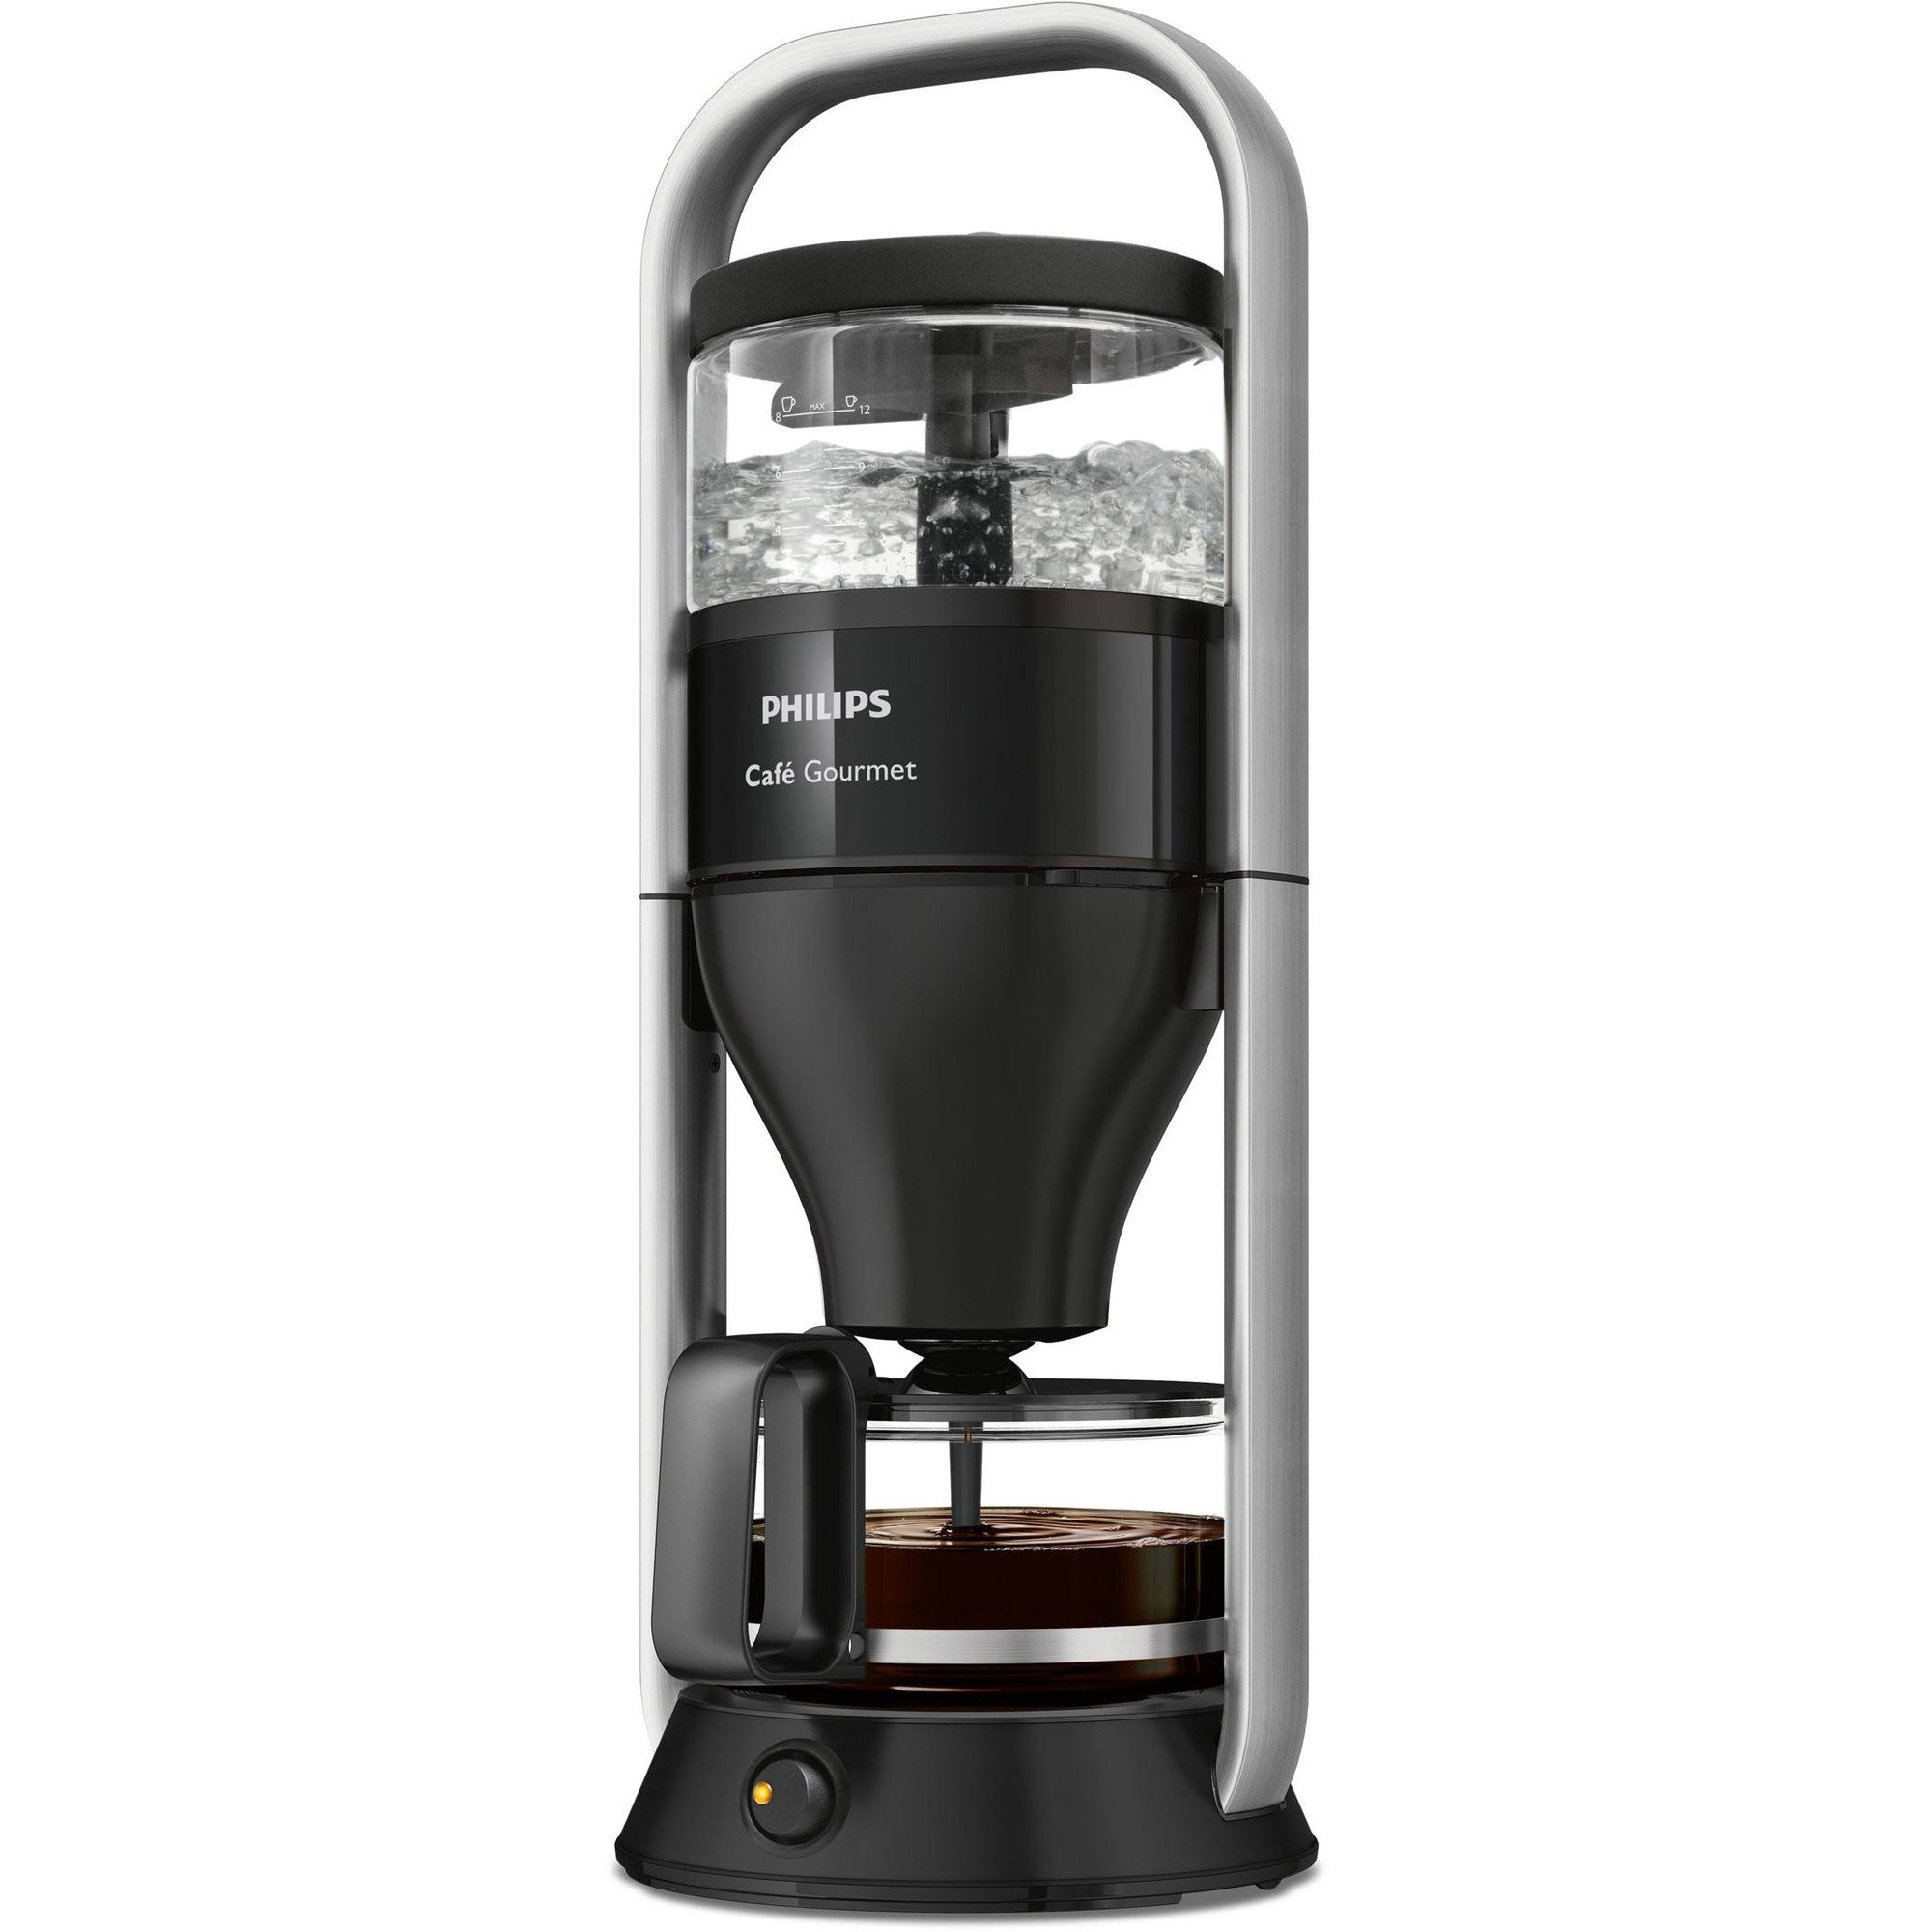 Philips HD5408/20 Cafe Gourmet sort